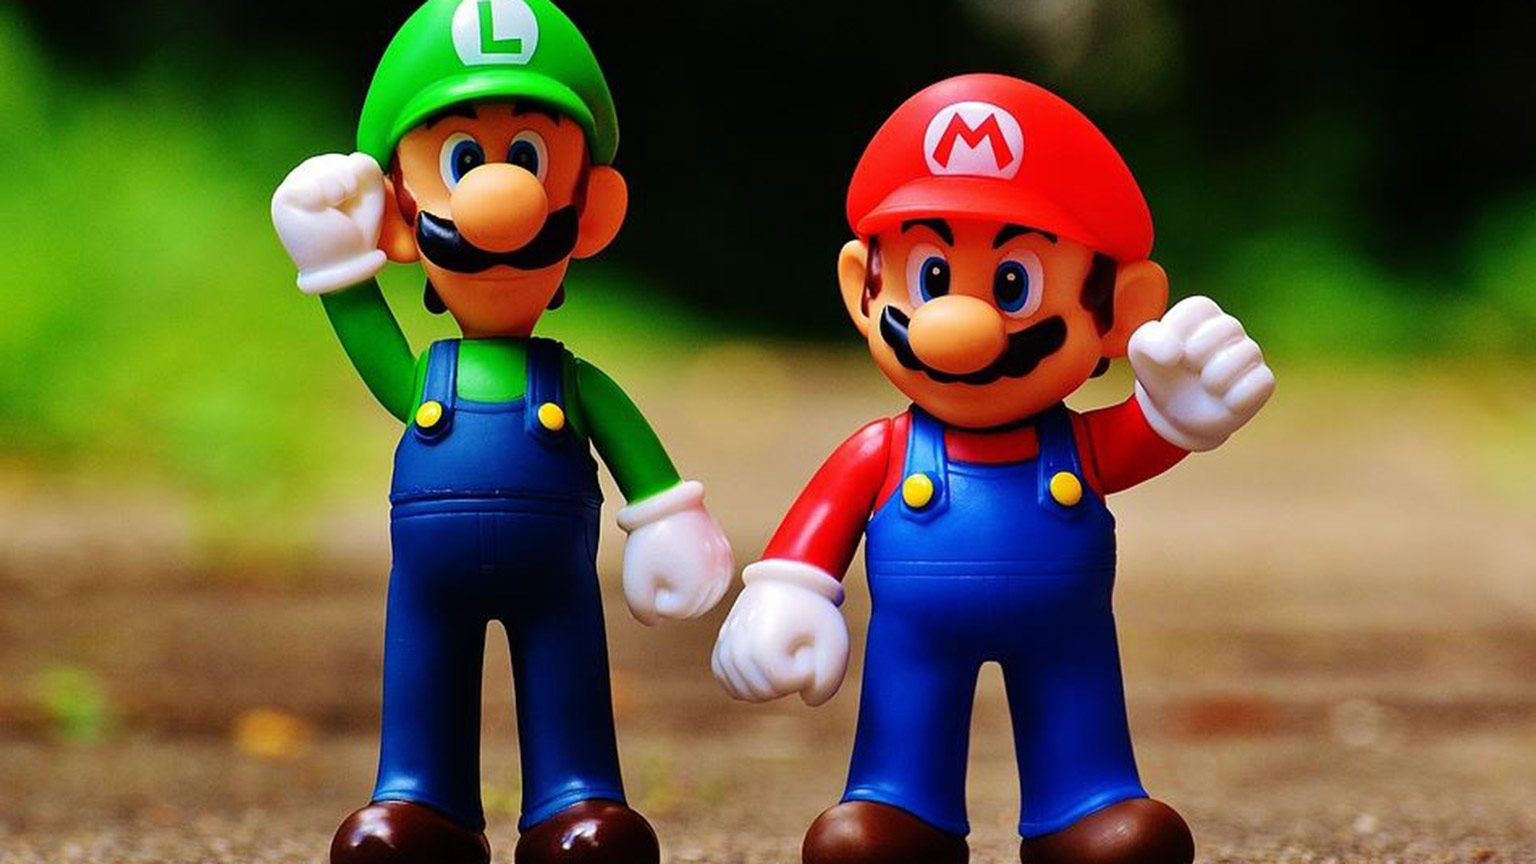 Mario And Luigi Action Figure